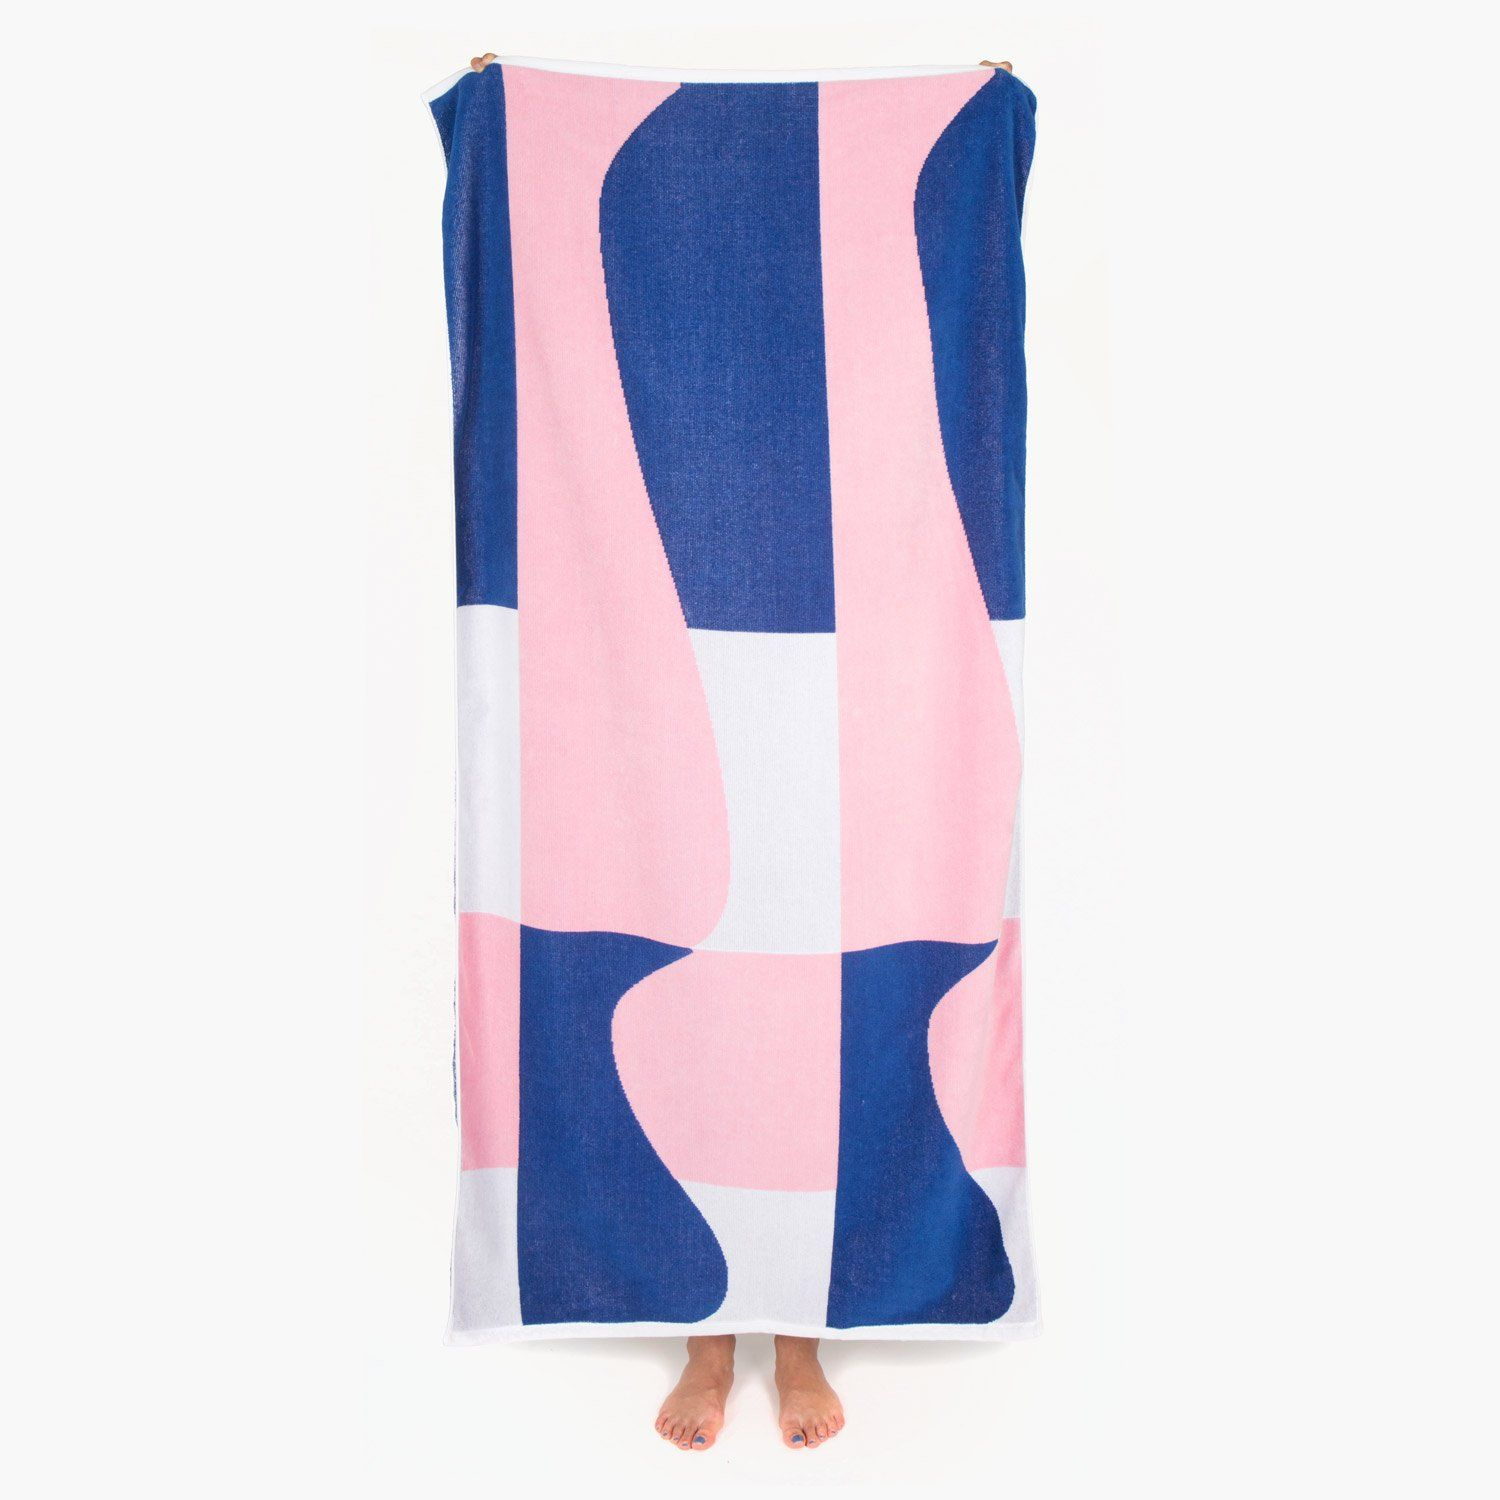 The Palmer Beach Towel Was Designed By Los Angeles Based Artist